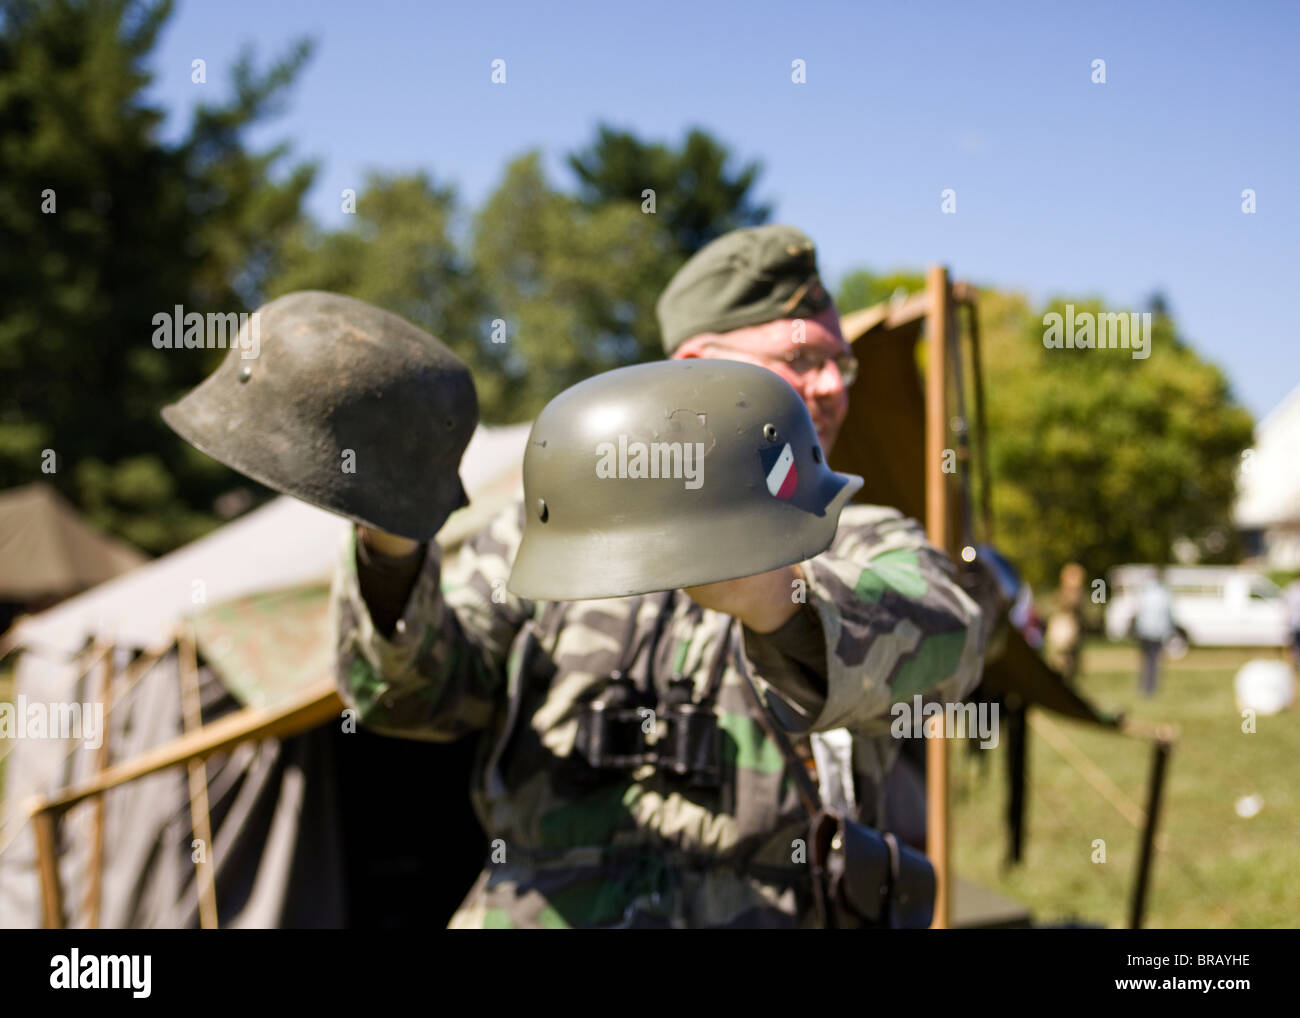 German Helmets Stock Photos & German Helmets Stock Images